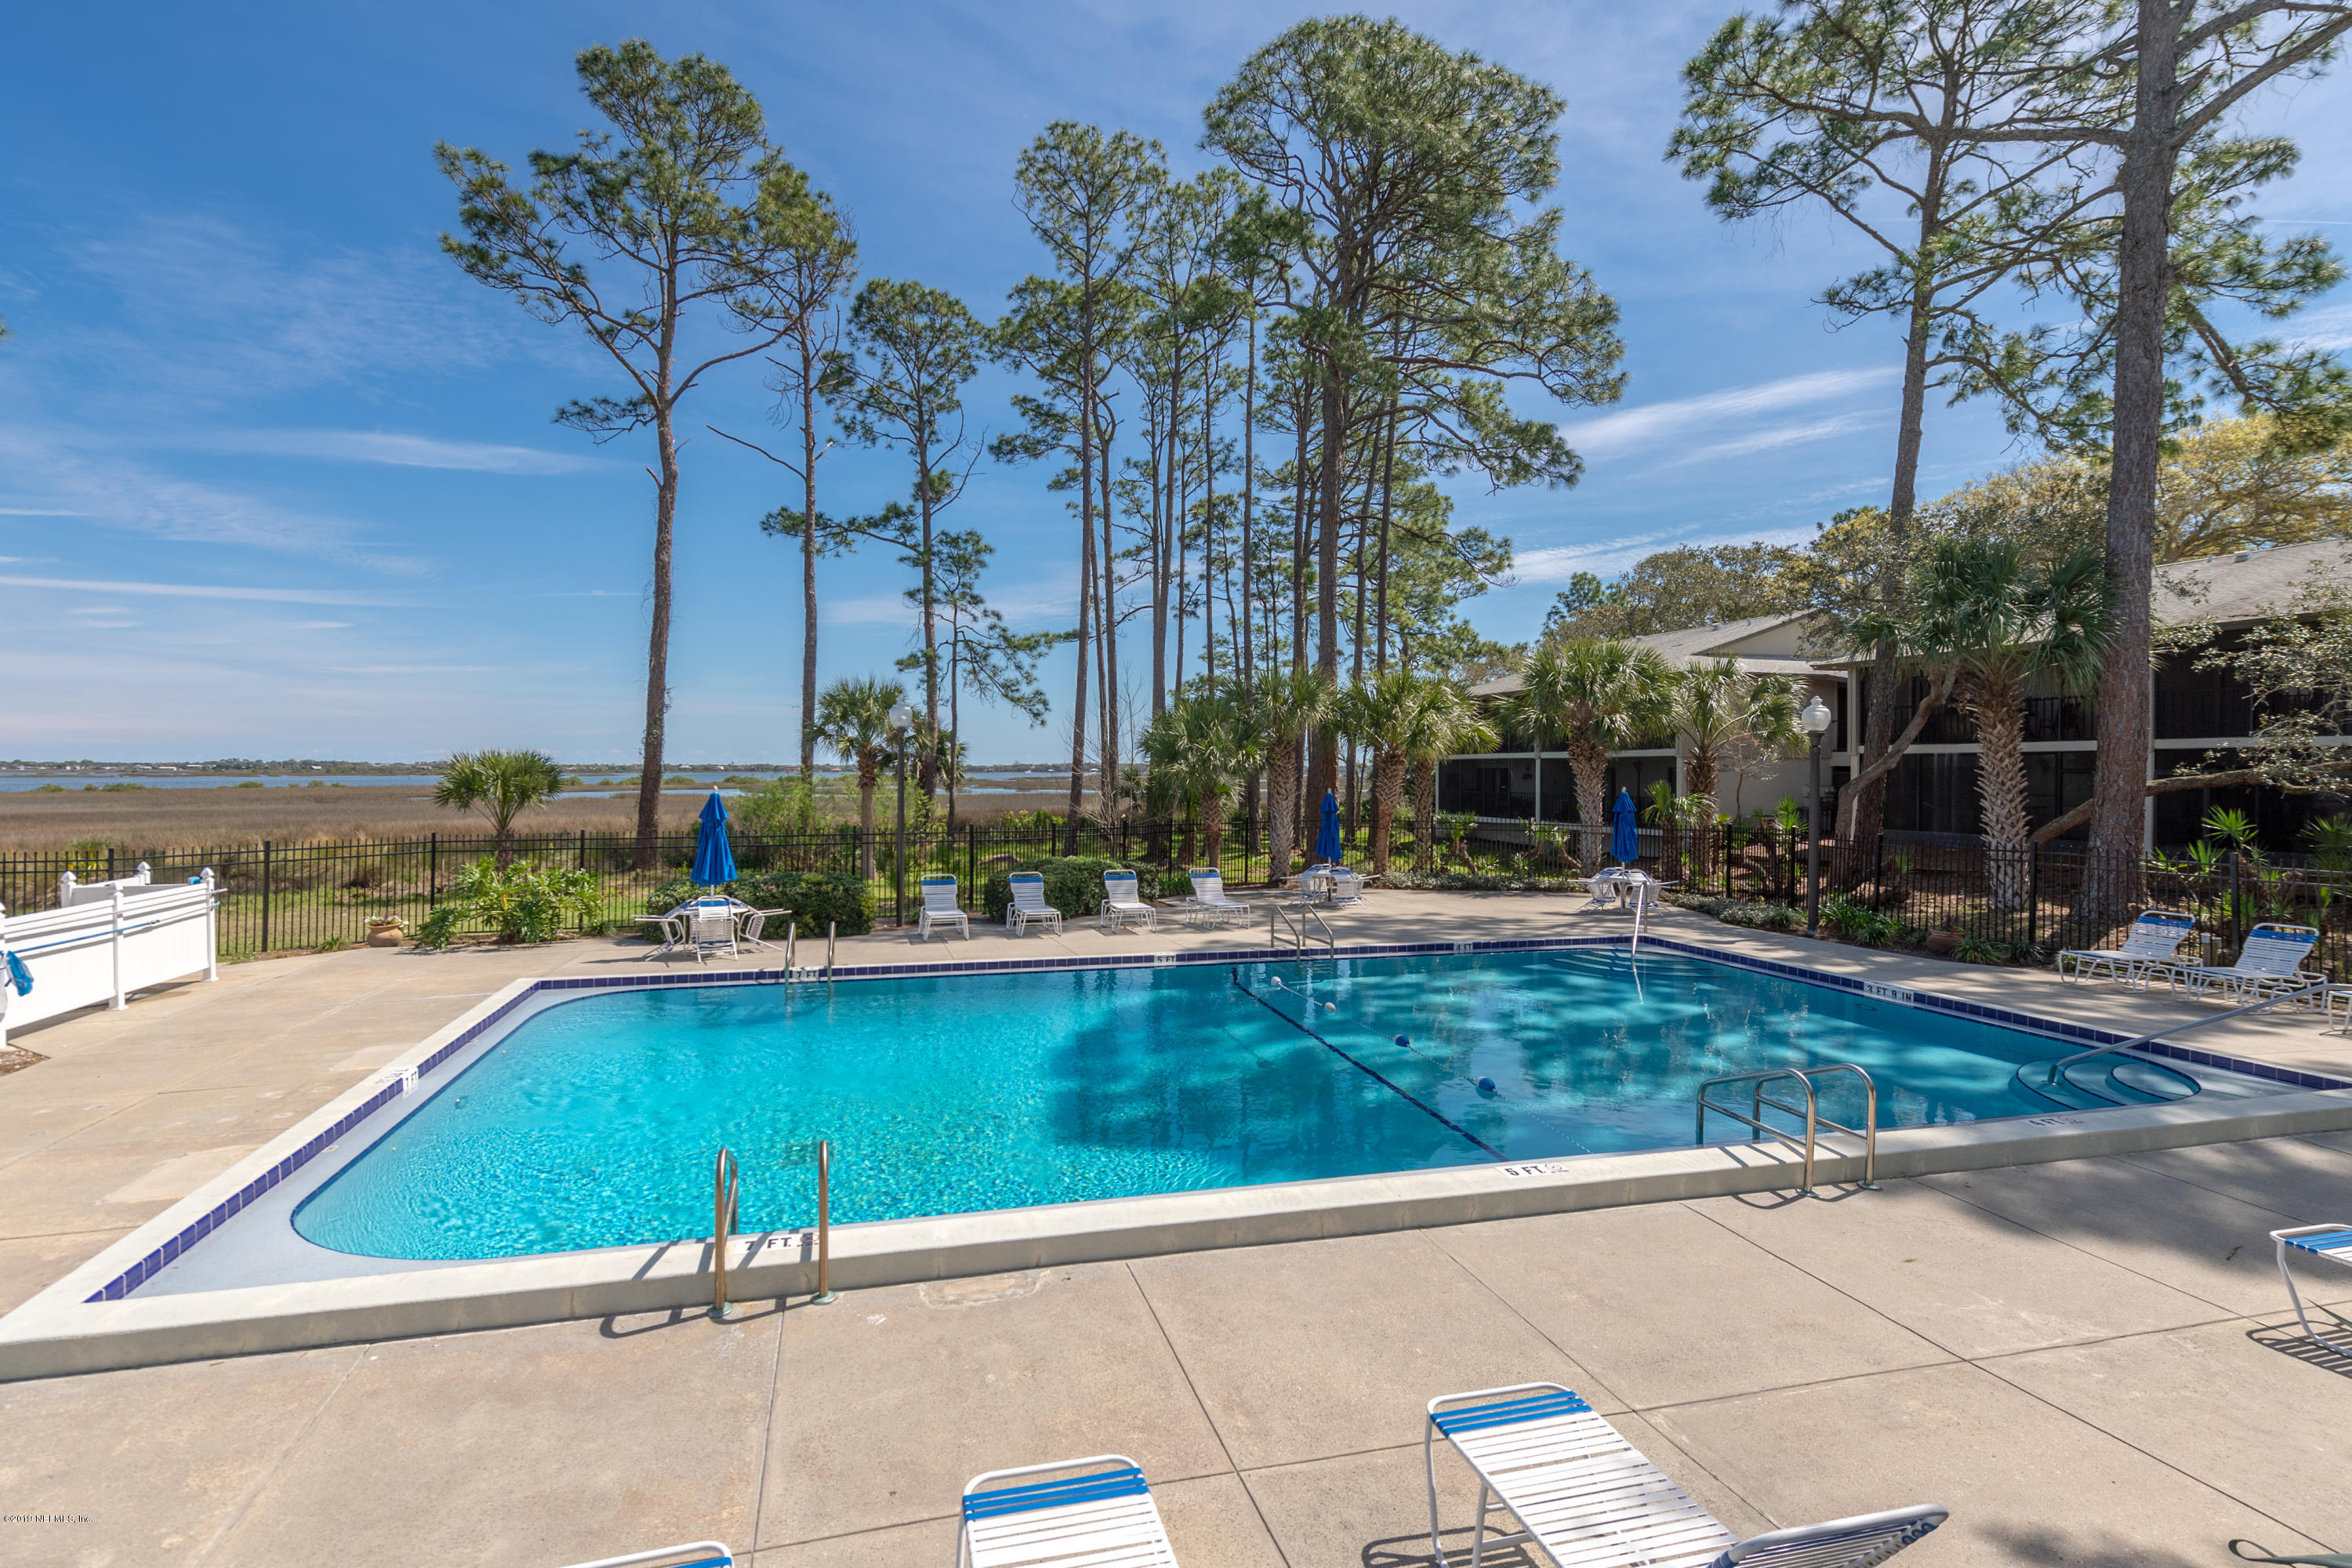 10 CATALONIA, ST AUGUSTINE, FLORIDA 32086, 3 Bedrooms Bedrooms, ,2 BathroomsBathrooms,Condo,For sale,CATALONIA,1016580